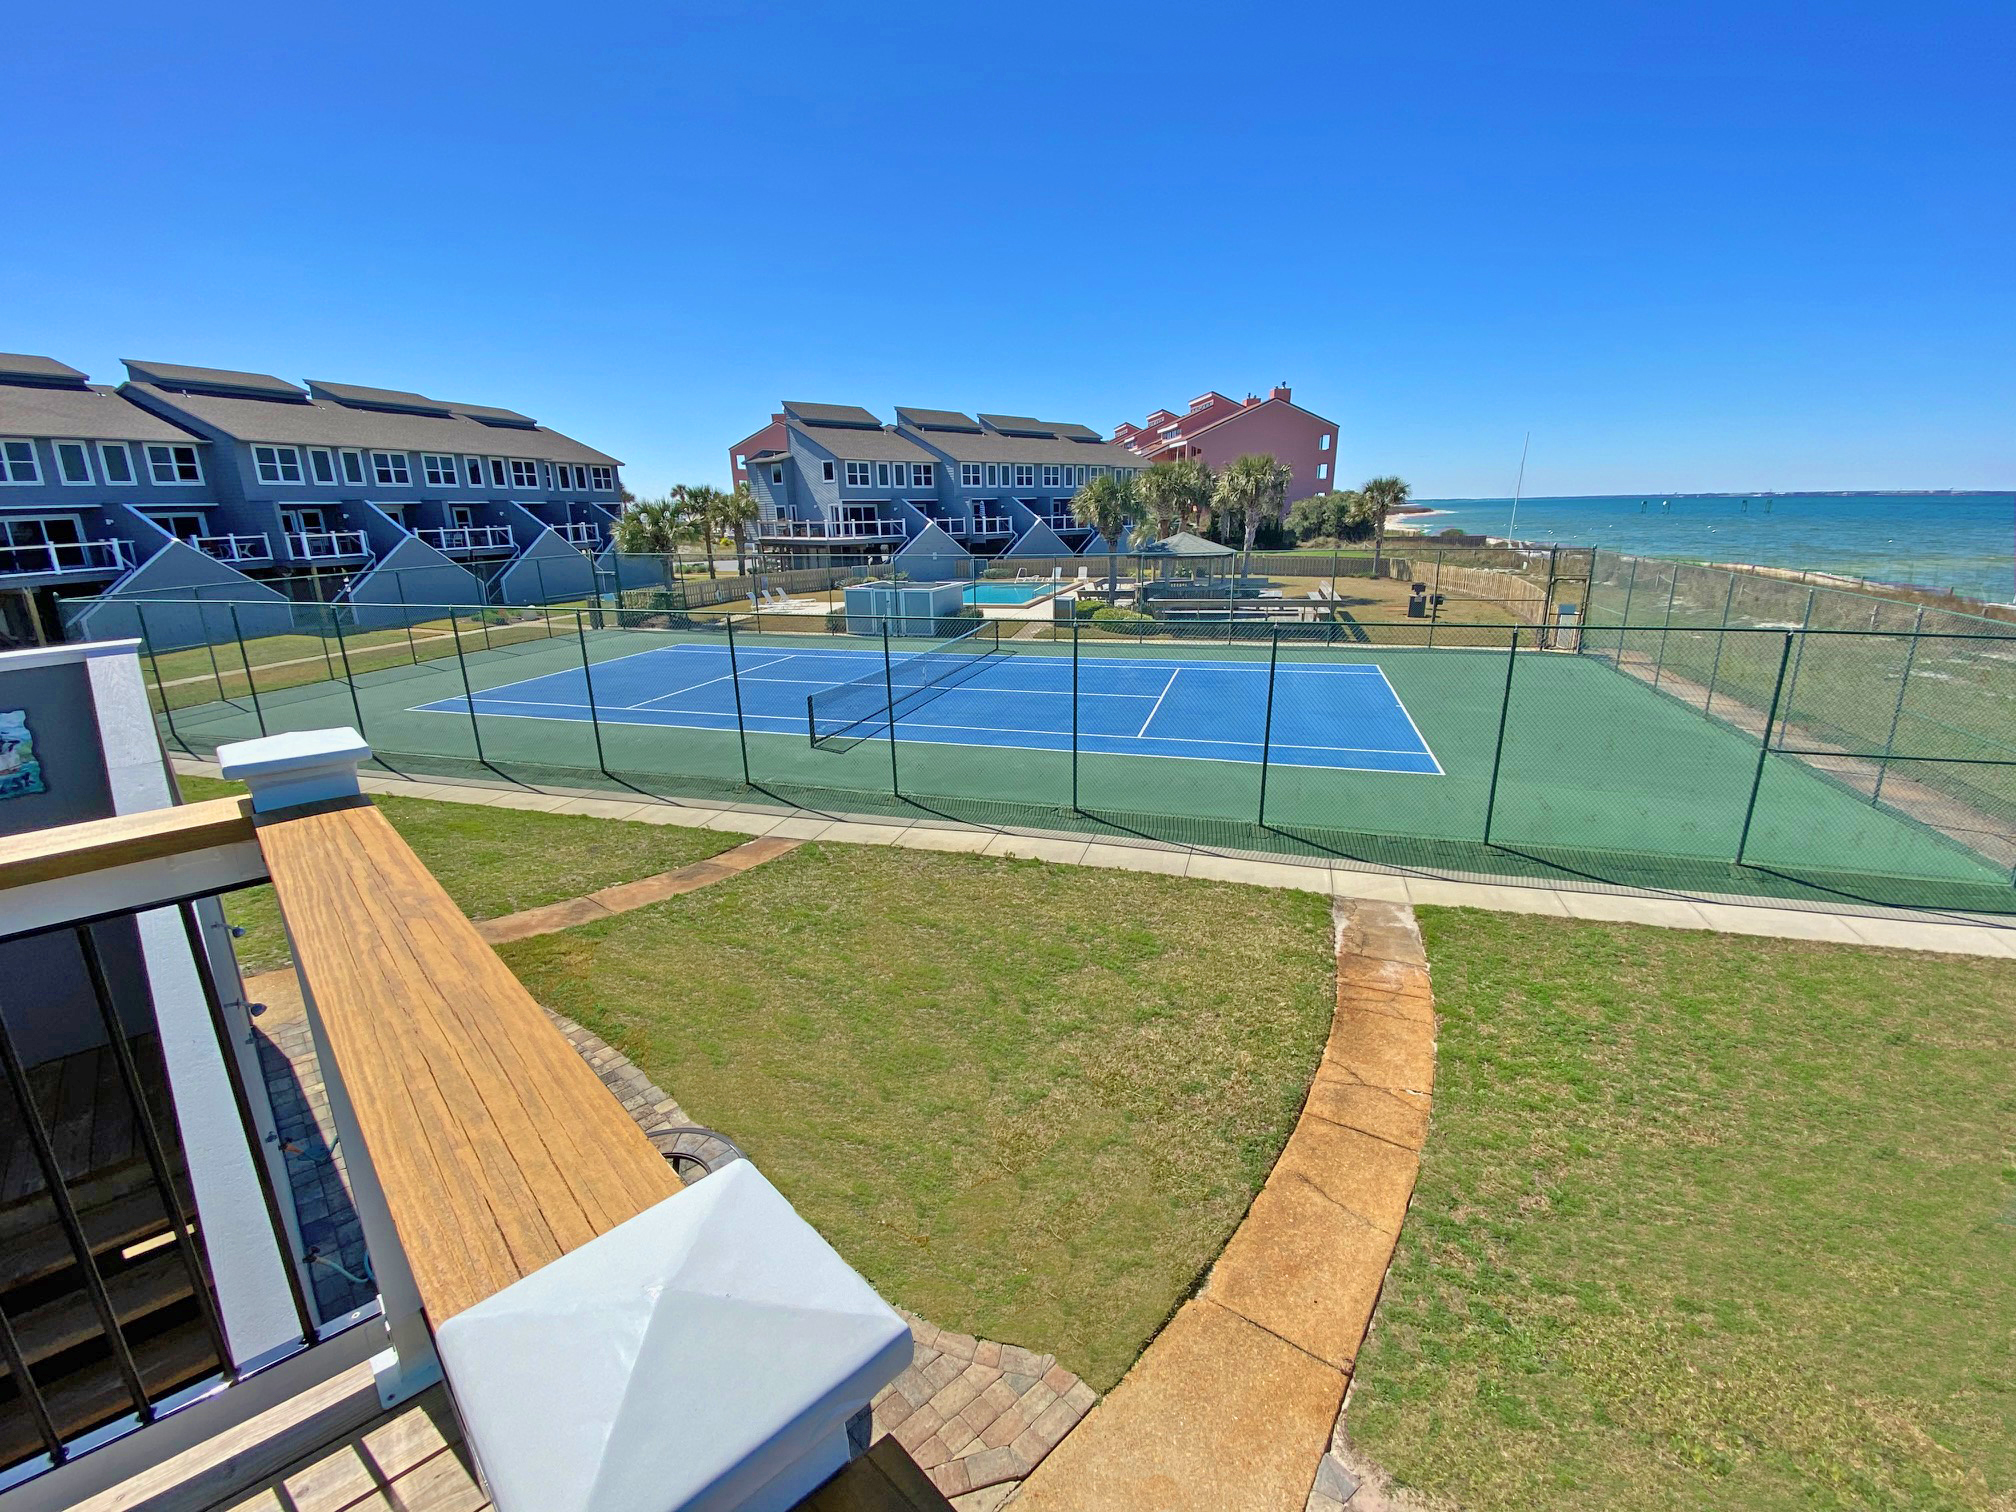 San De Luna #27 Townhouse rental in San DeLuna Pensacola Beach in Pensacola Beach Florida - #35